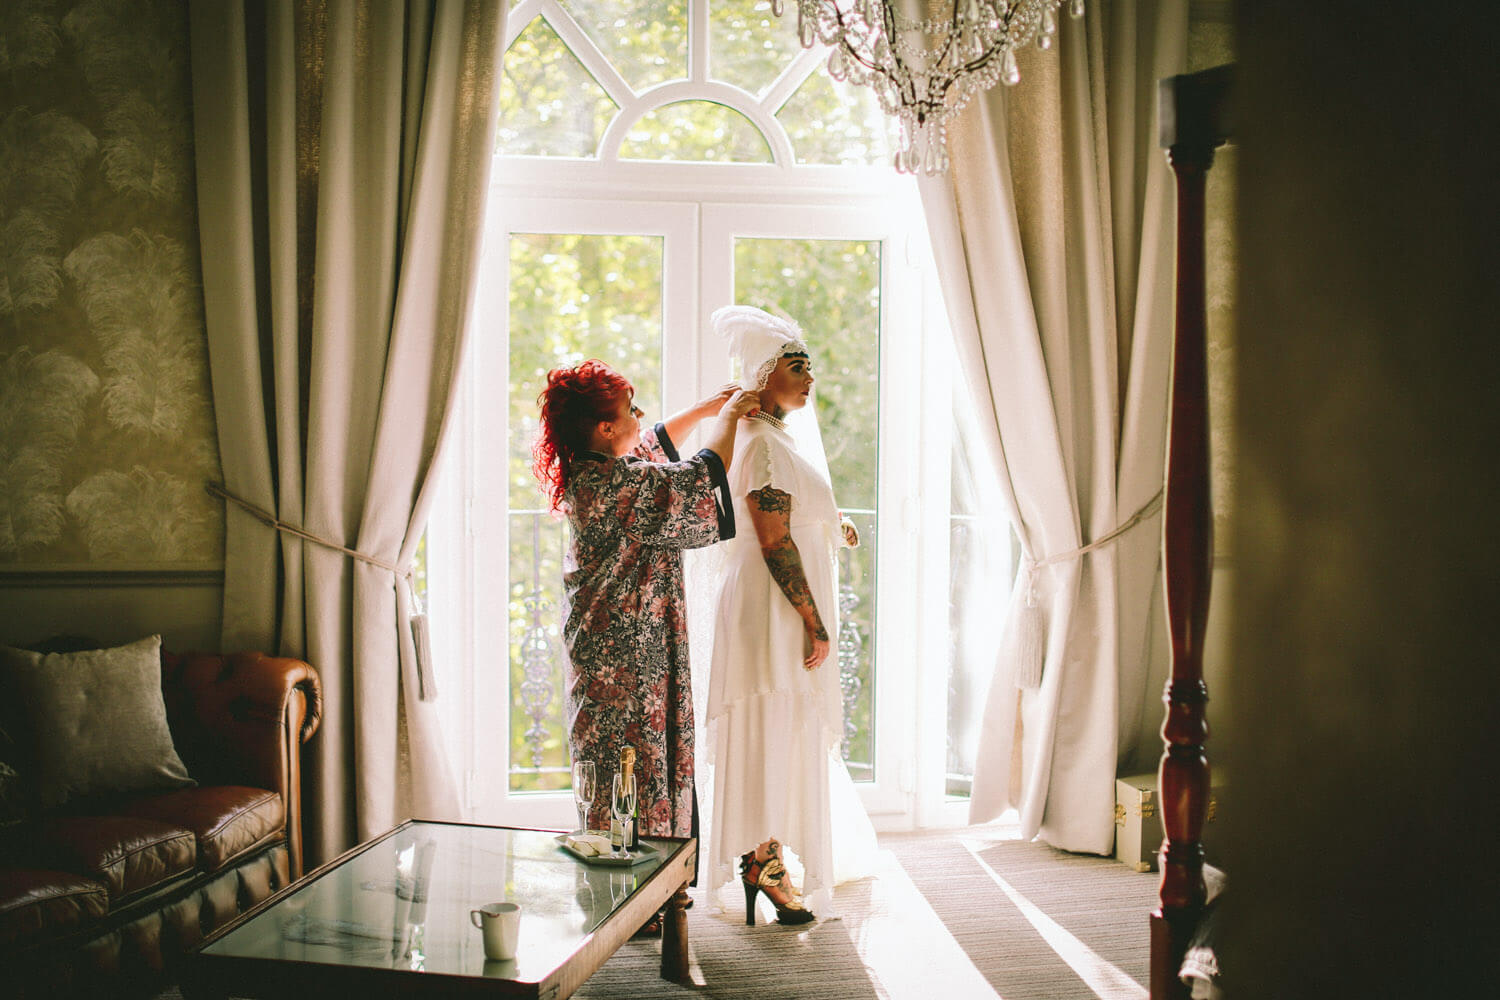 Mother of bride and daughter getting ready in window